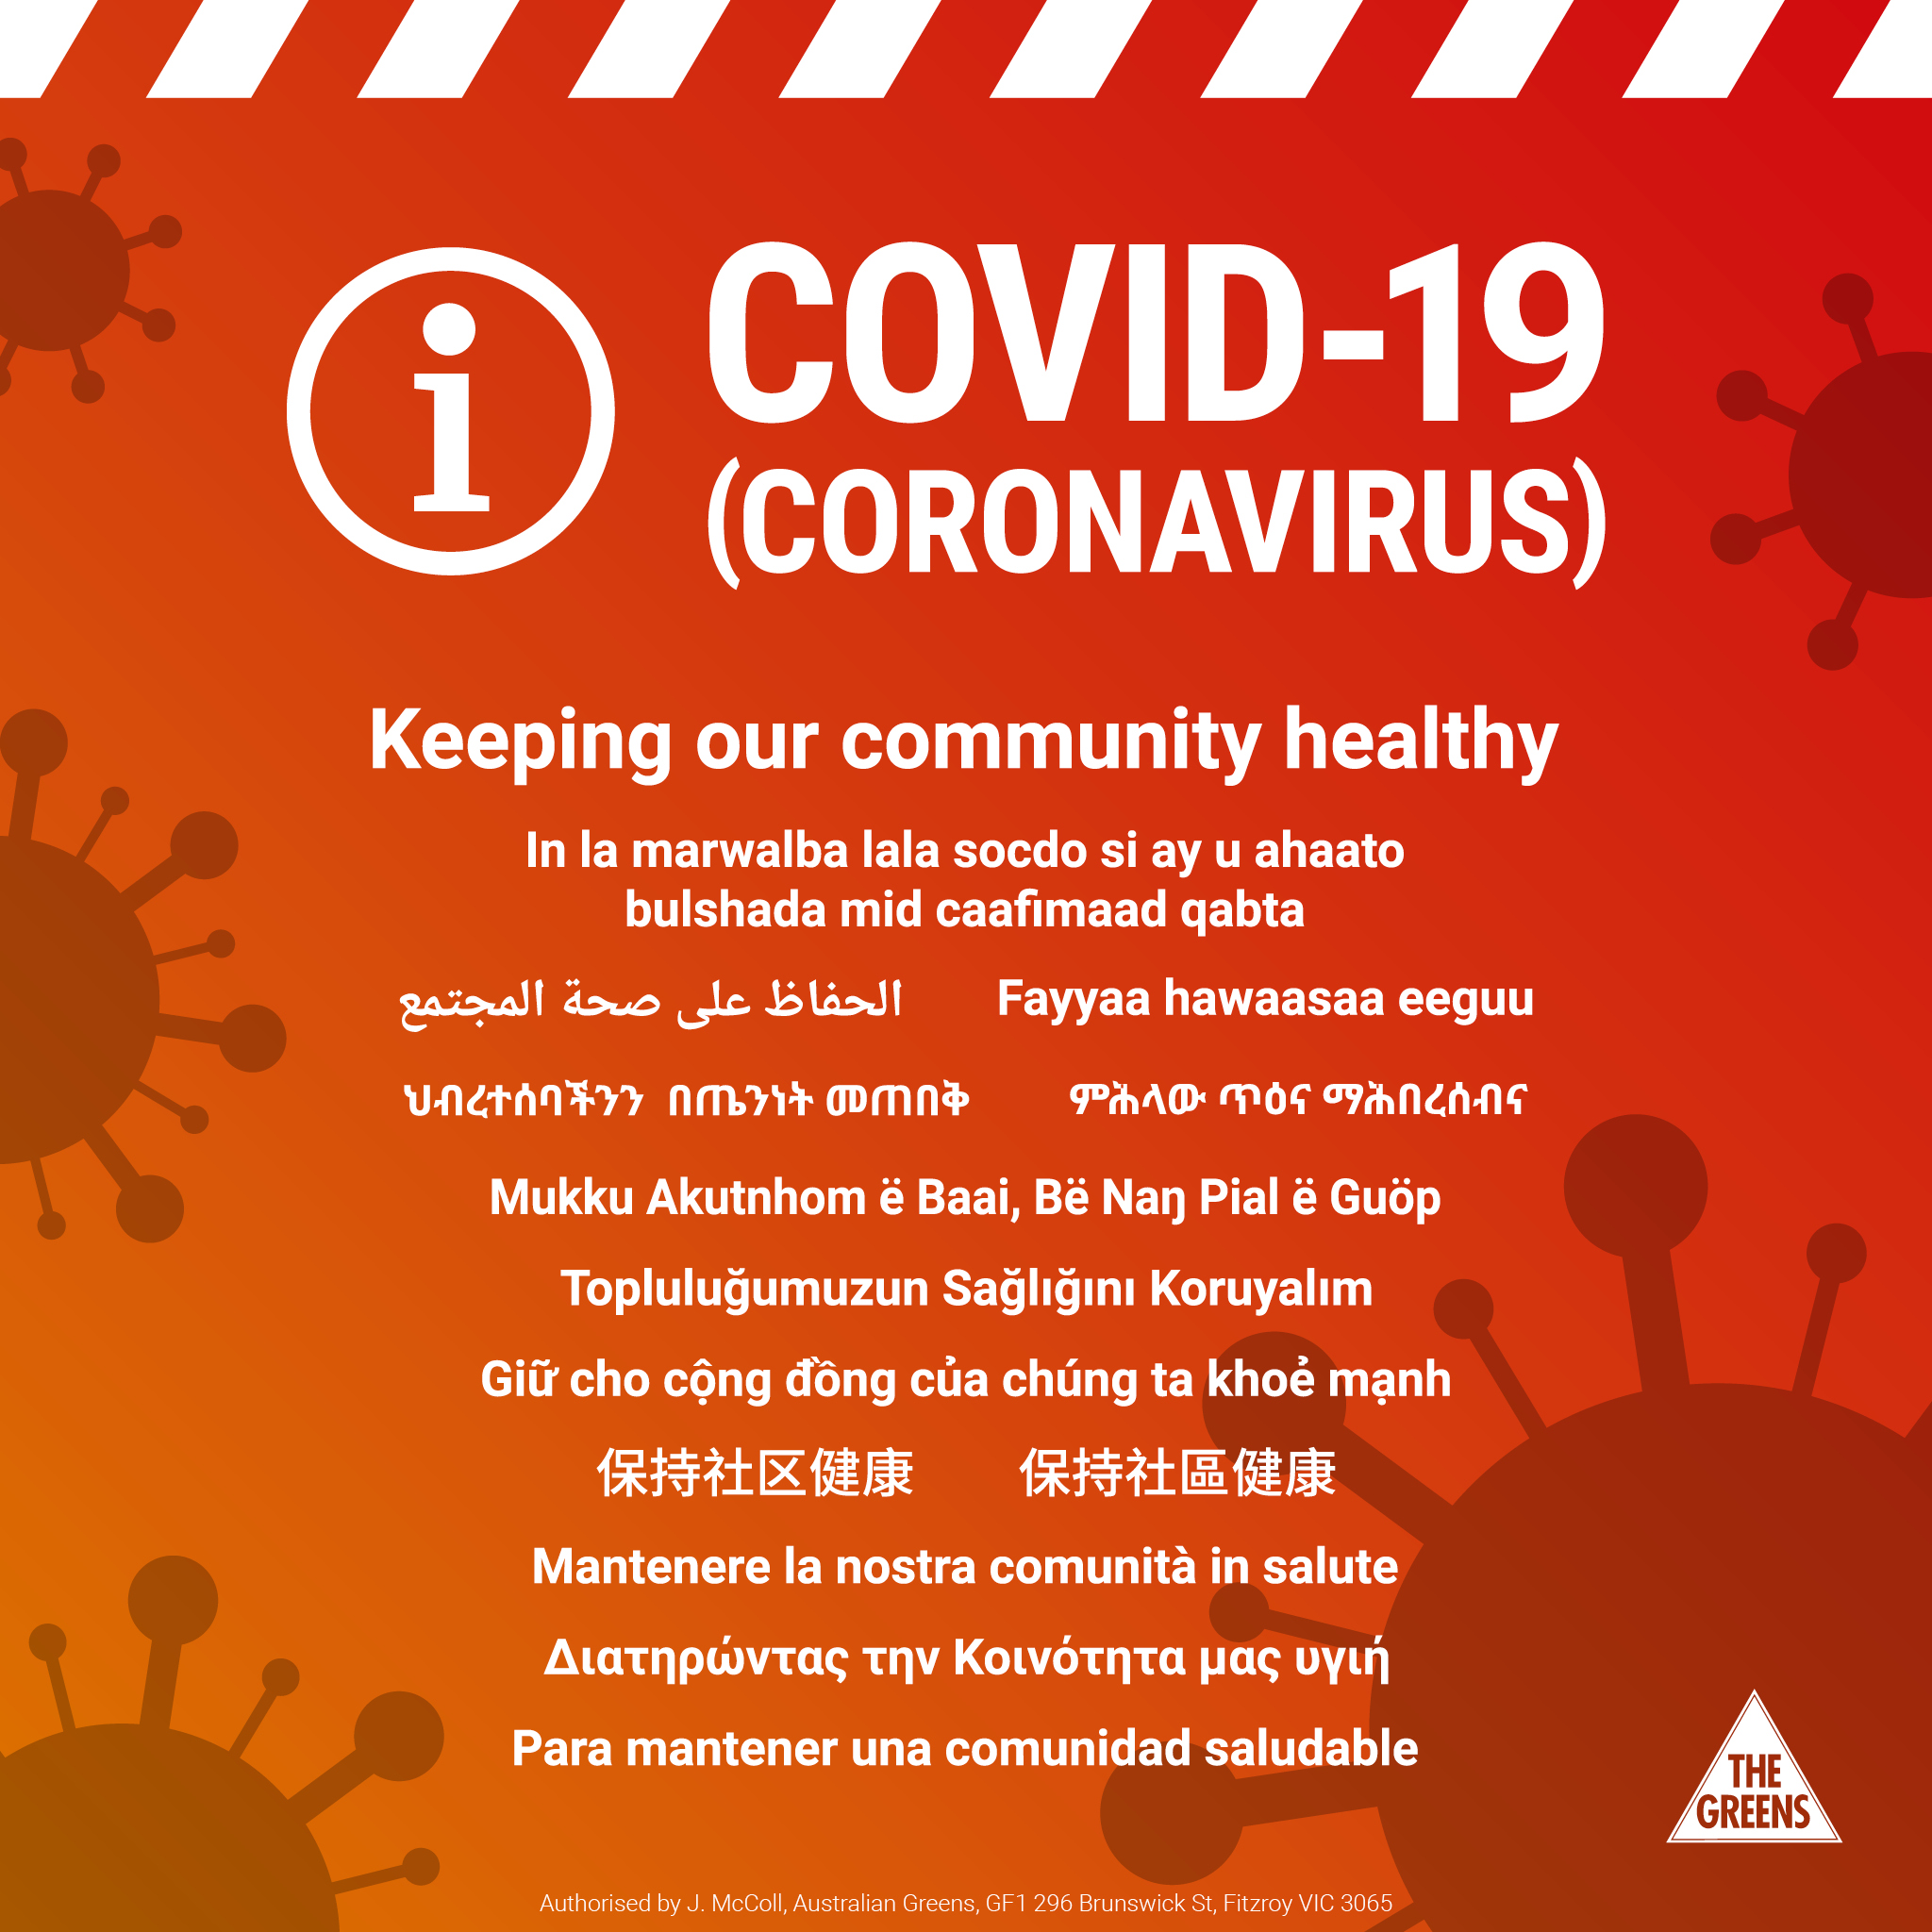 COVID-19 keeping our community healthy. For full text, please refer to the PDFs linked in the next section